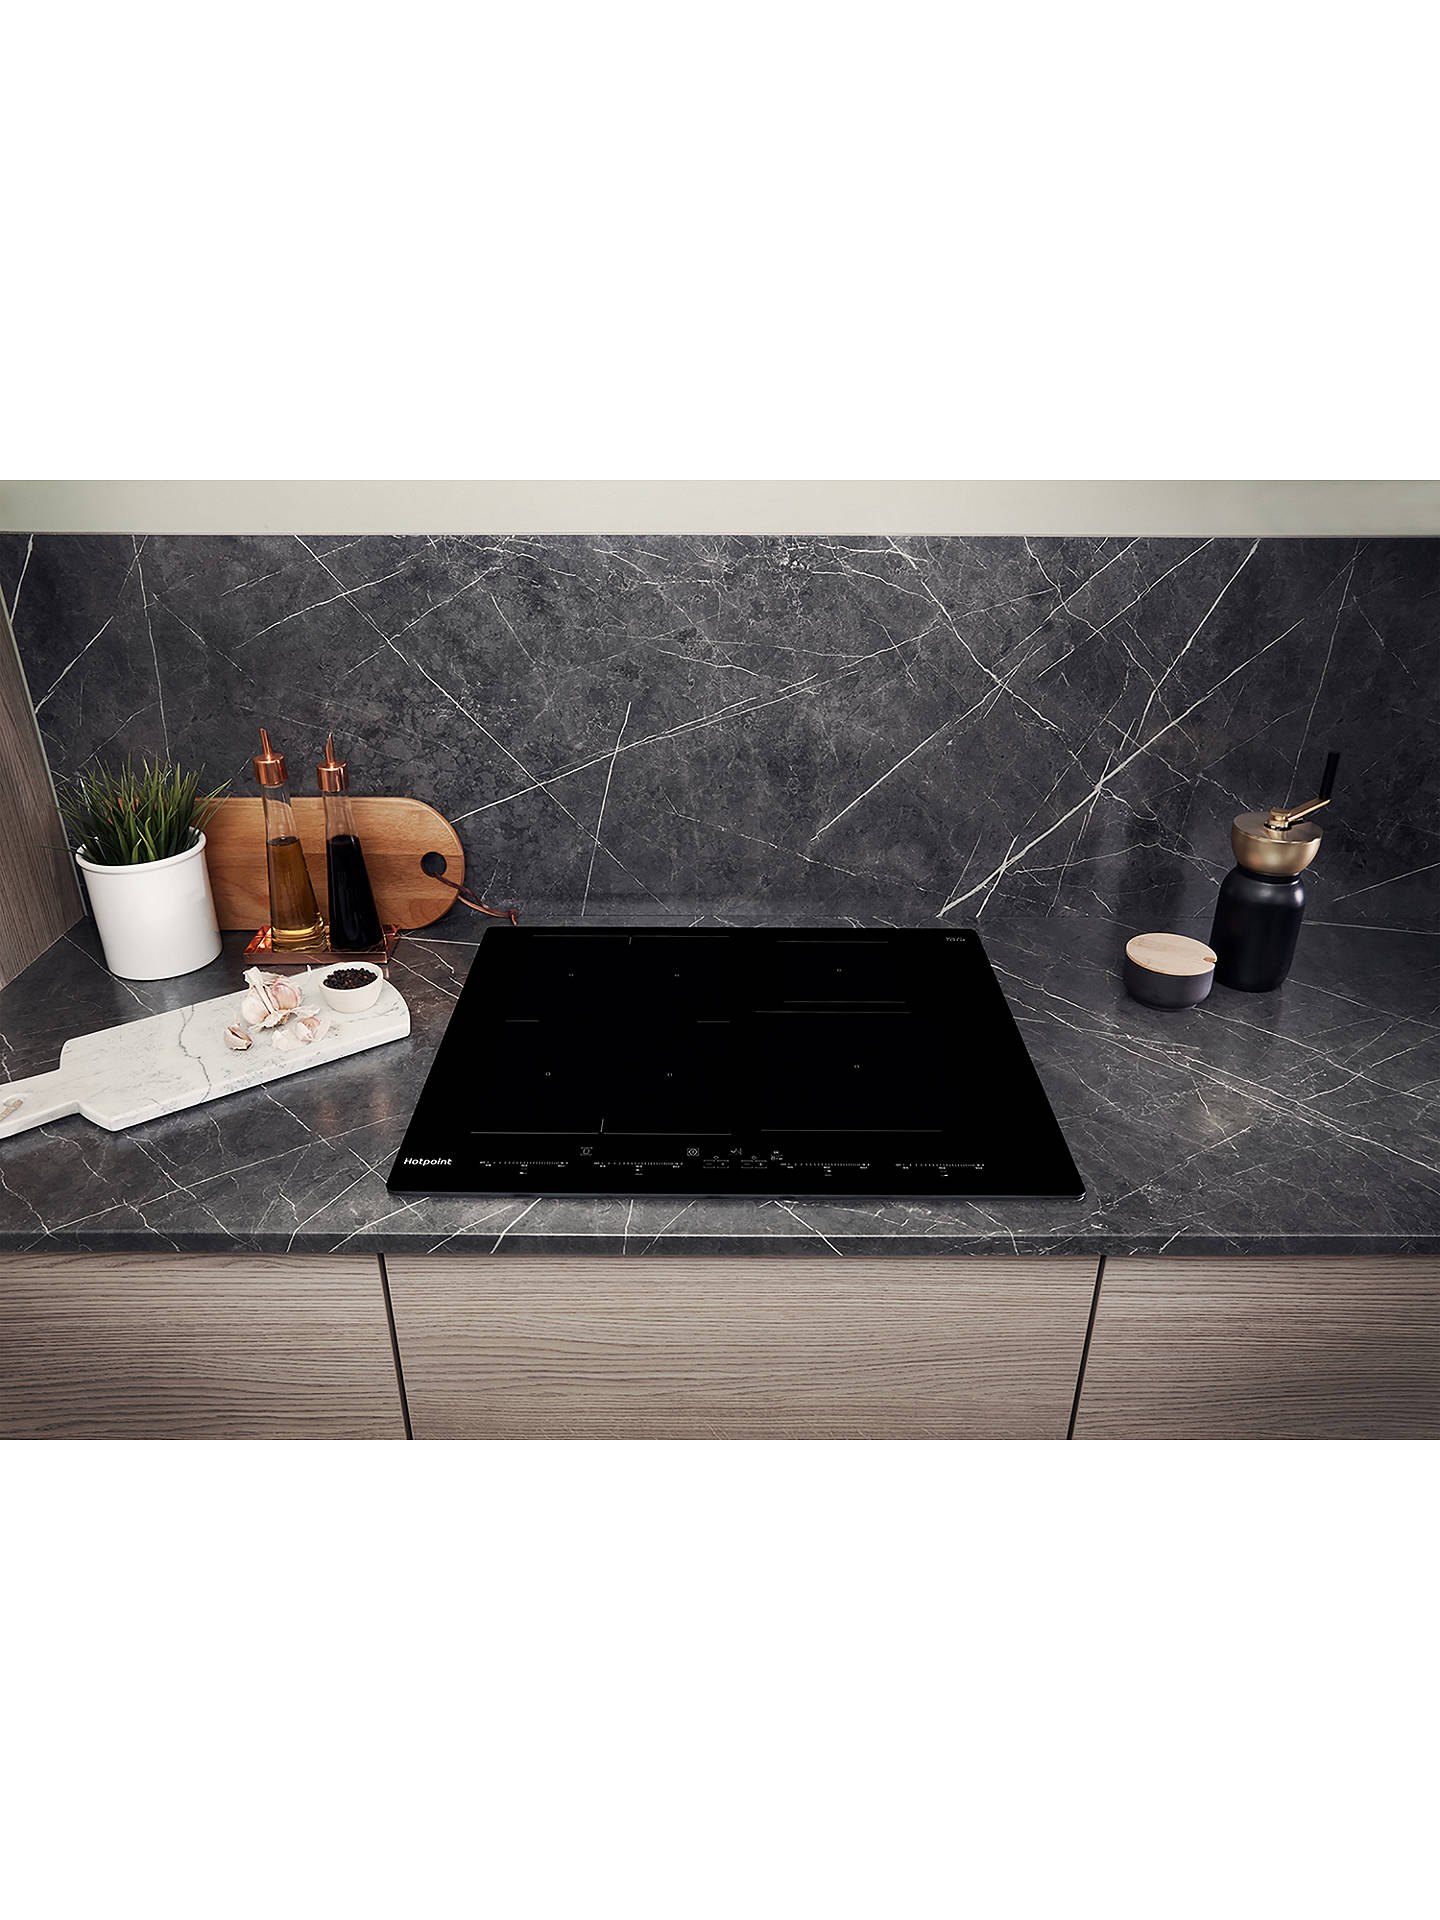 BuyHotpoint ACO654NE 65cm Induction Hob, Black Online at johnlewis.com